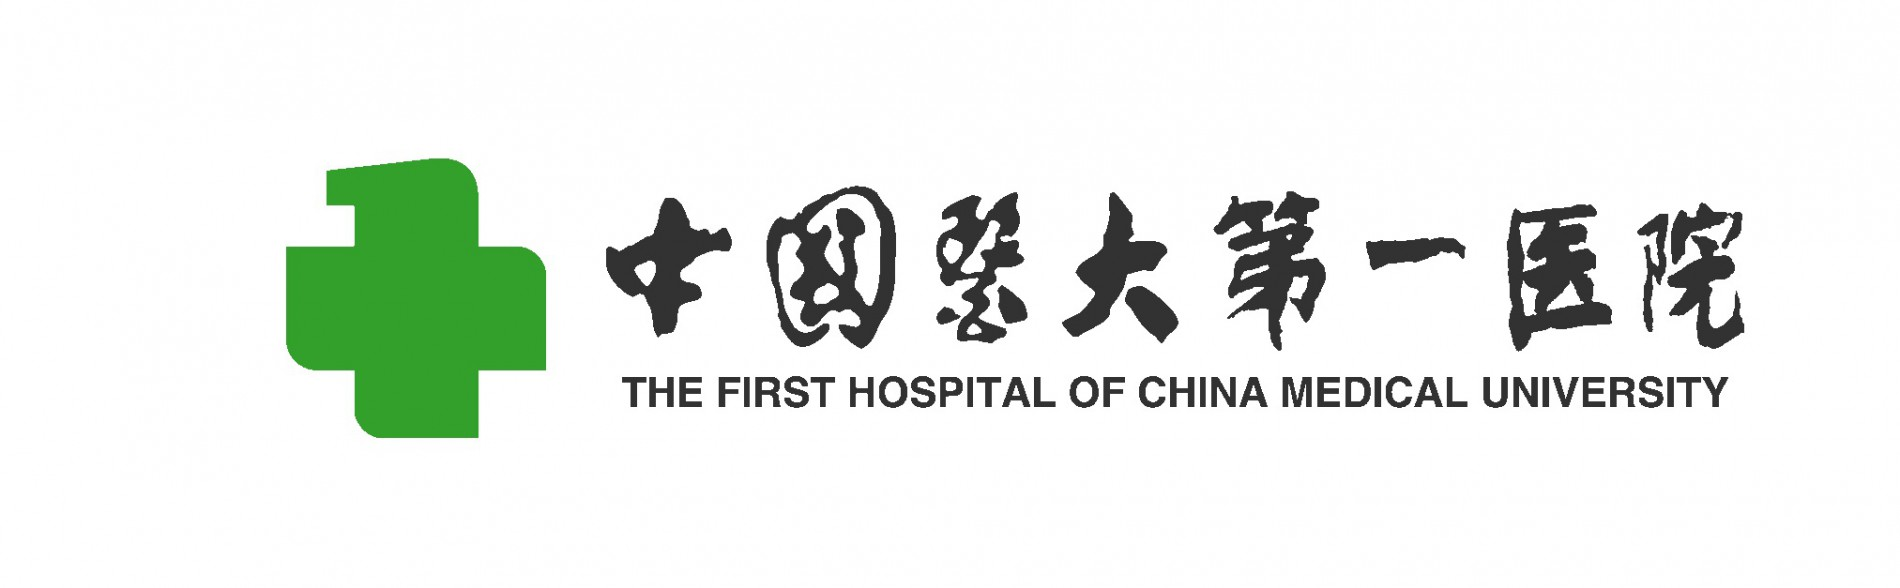 The First Hospital of China Medical University